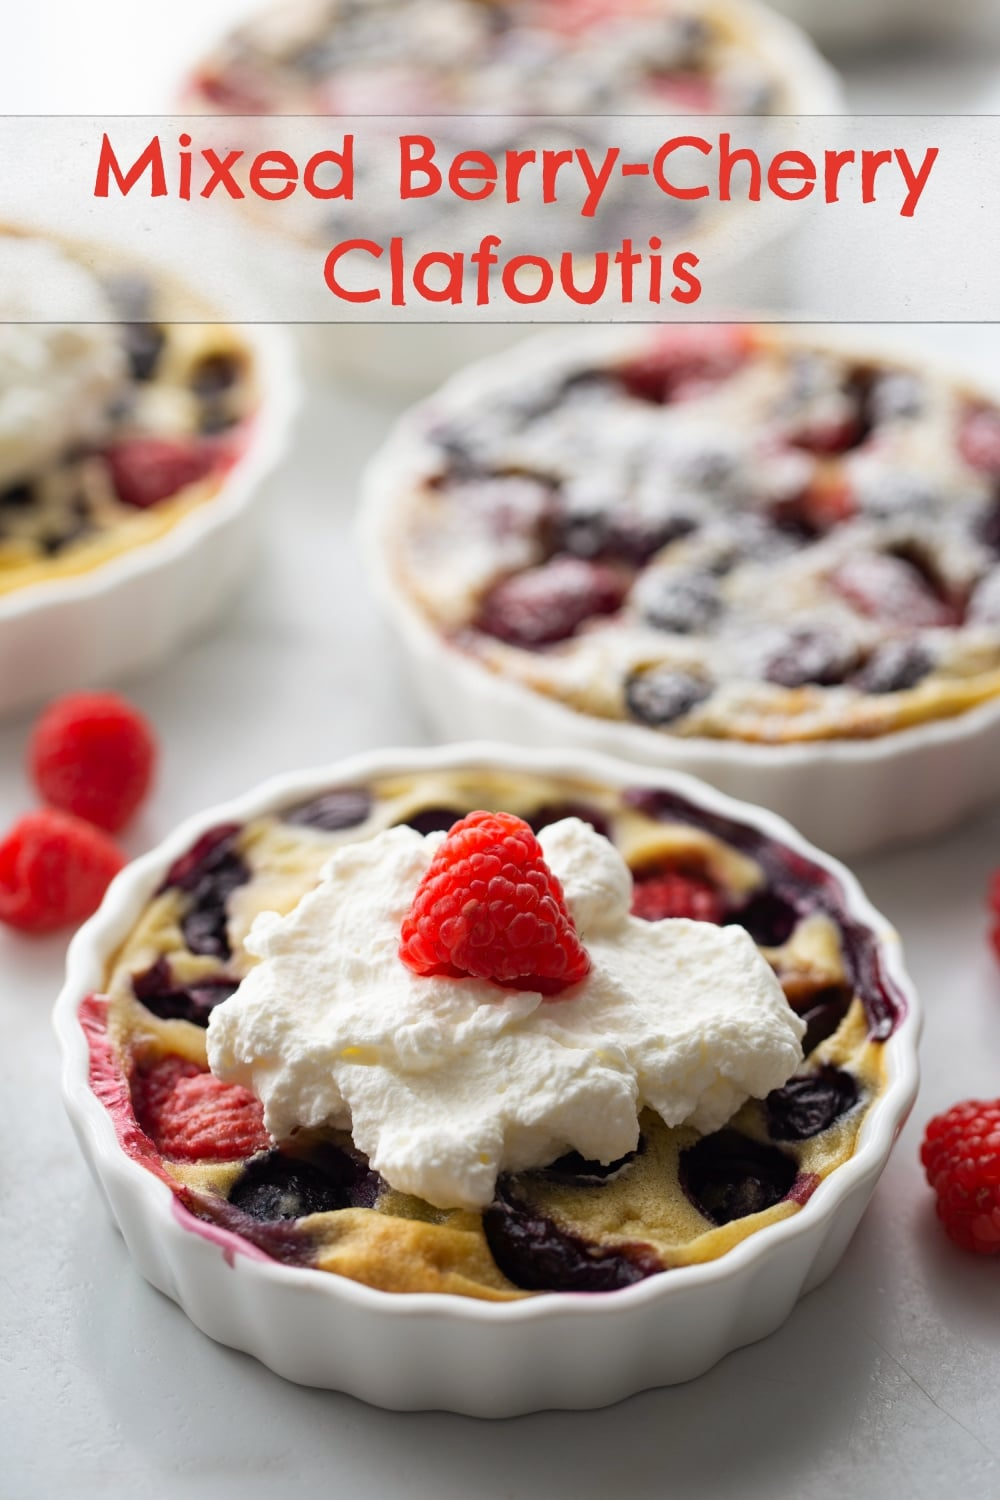 """Clafoutis is a traditional, rustic, custard-like, French dessert that uniquely """"shows off"""" summer fruit in the most delicious way possible. And it couldn't be easier to make! This particular version is packed with fresh cherries, raspberries and blueberries, all at their peak of ripeness. via @cmpollak1"""